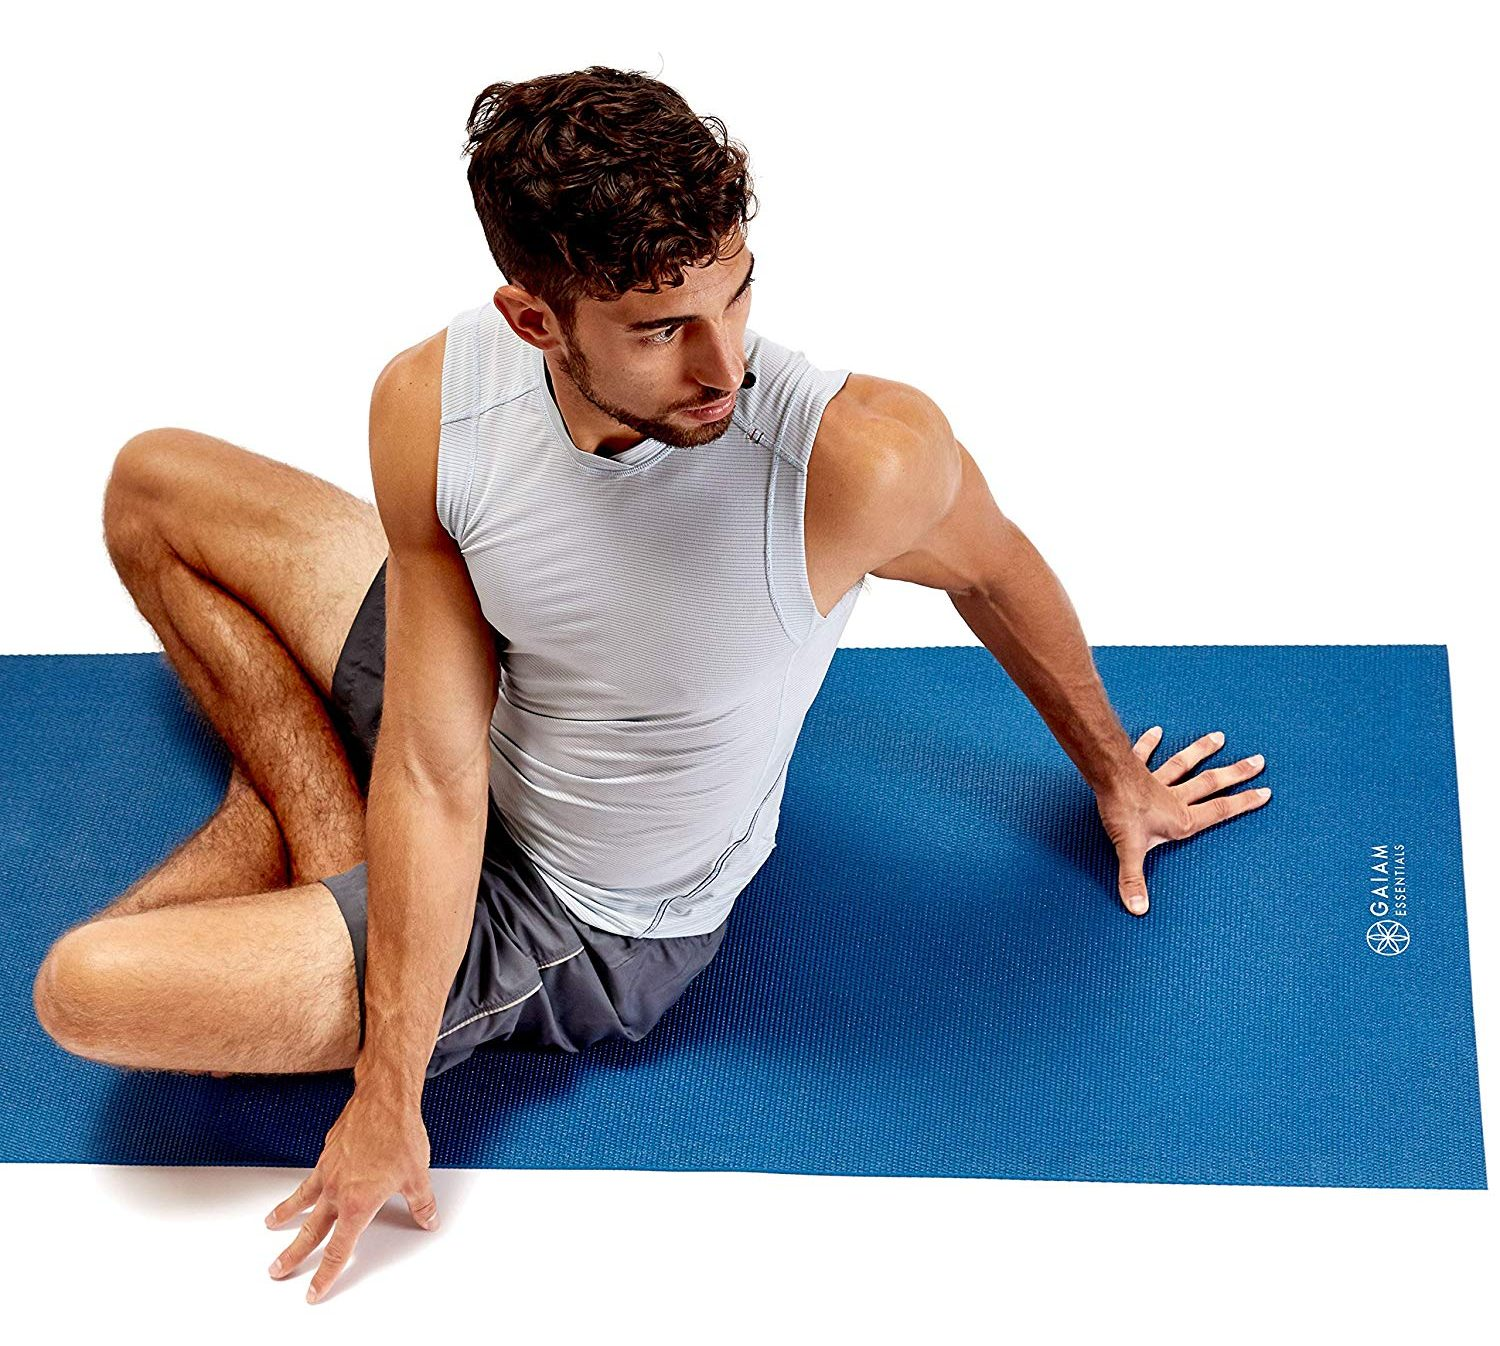 Affordable Yoga Mats The Best Yoga And Exercise Mats Under 20 Spy